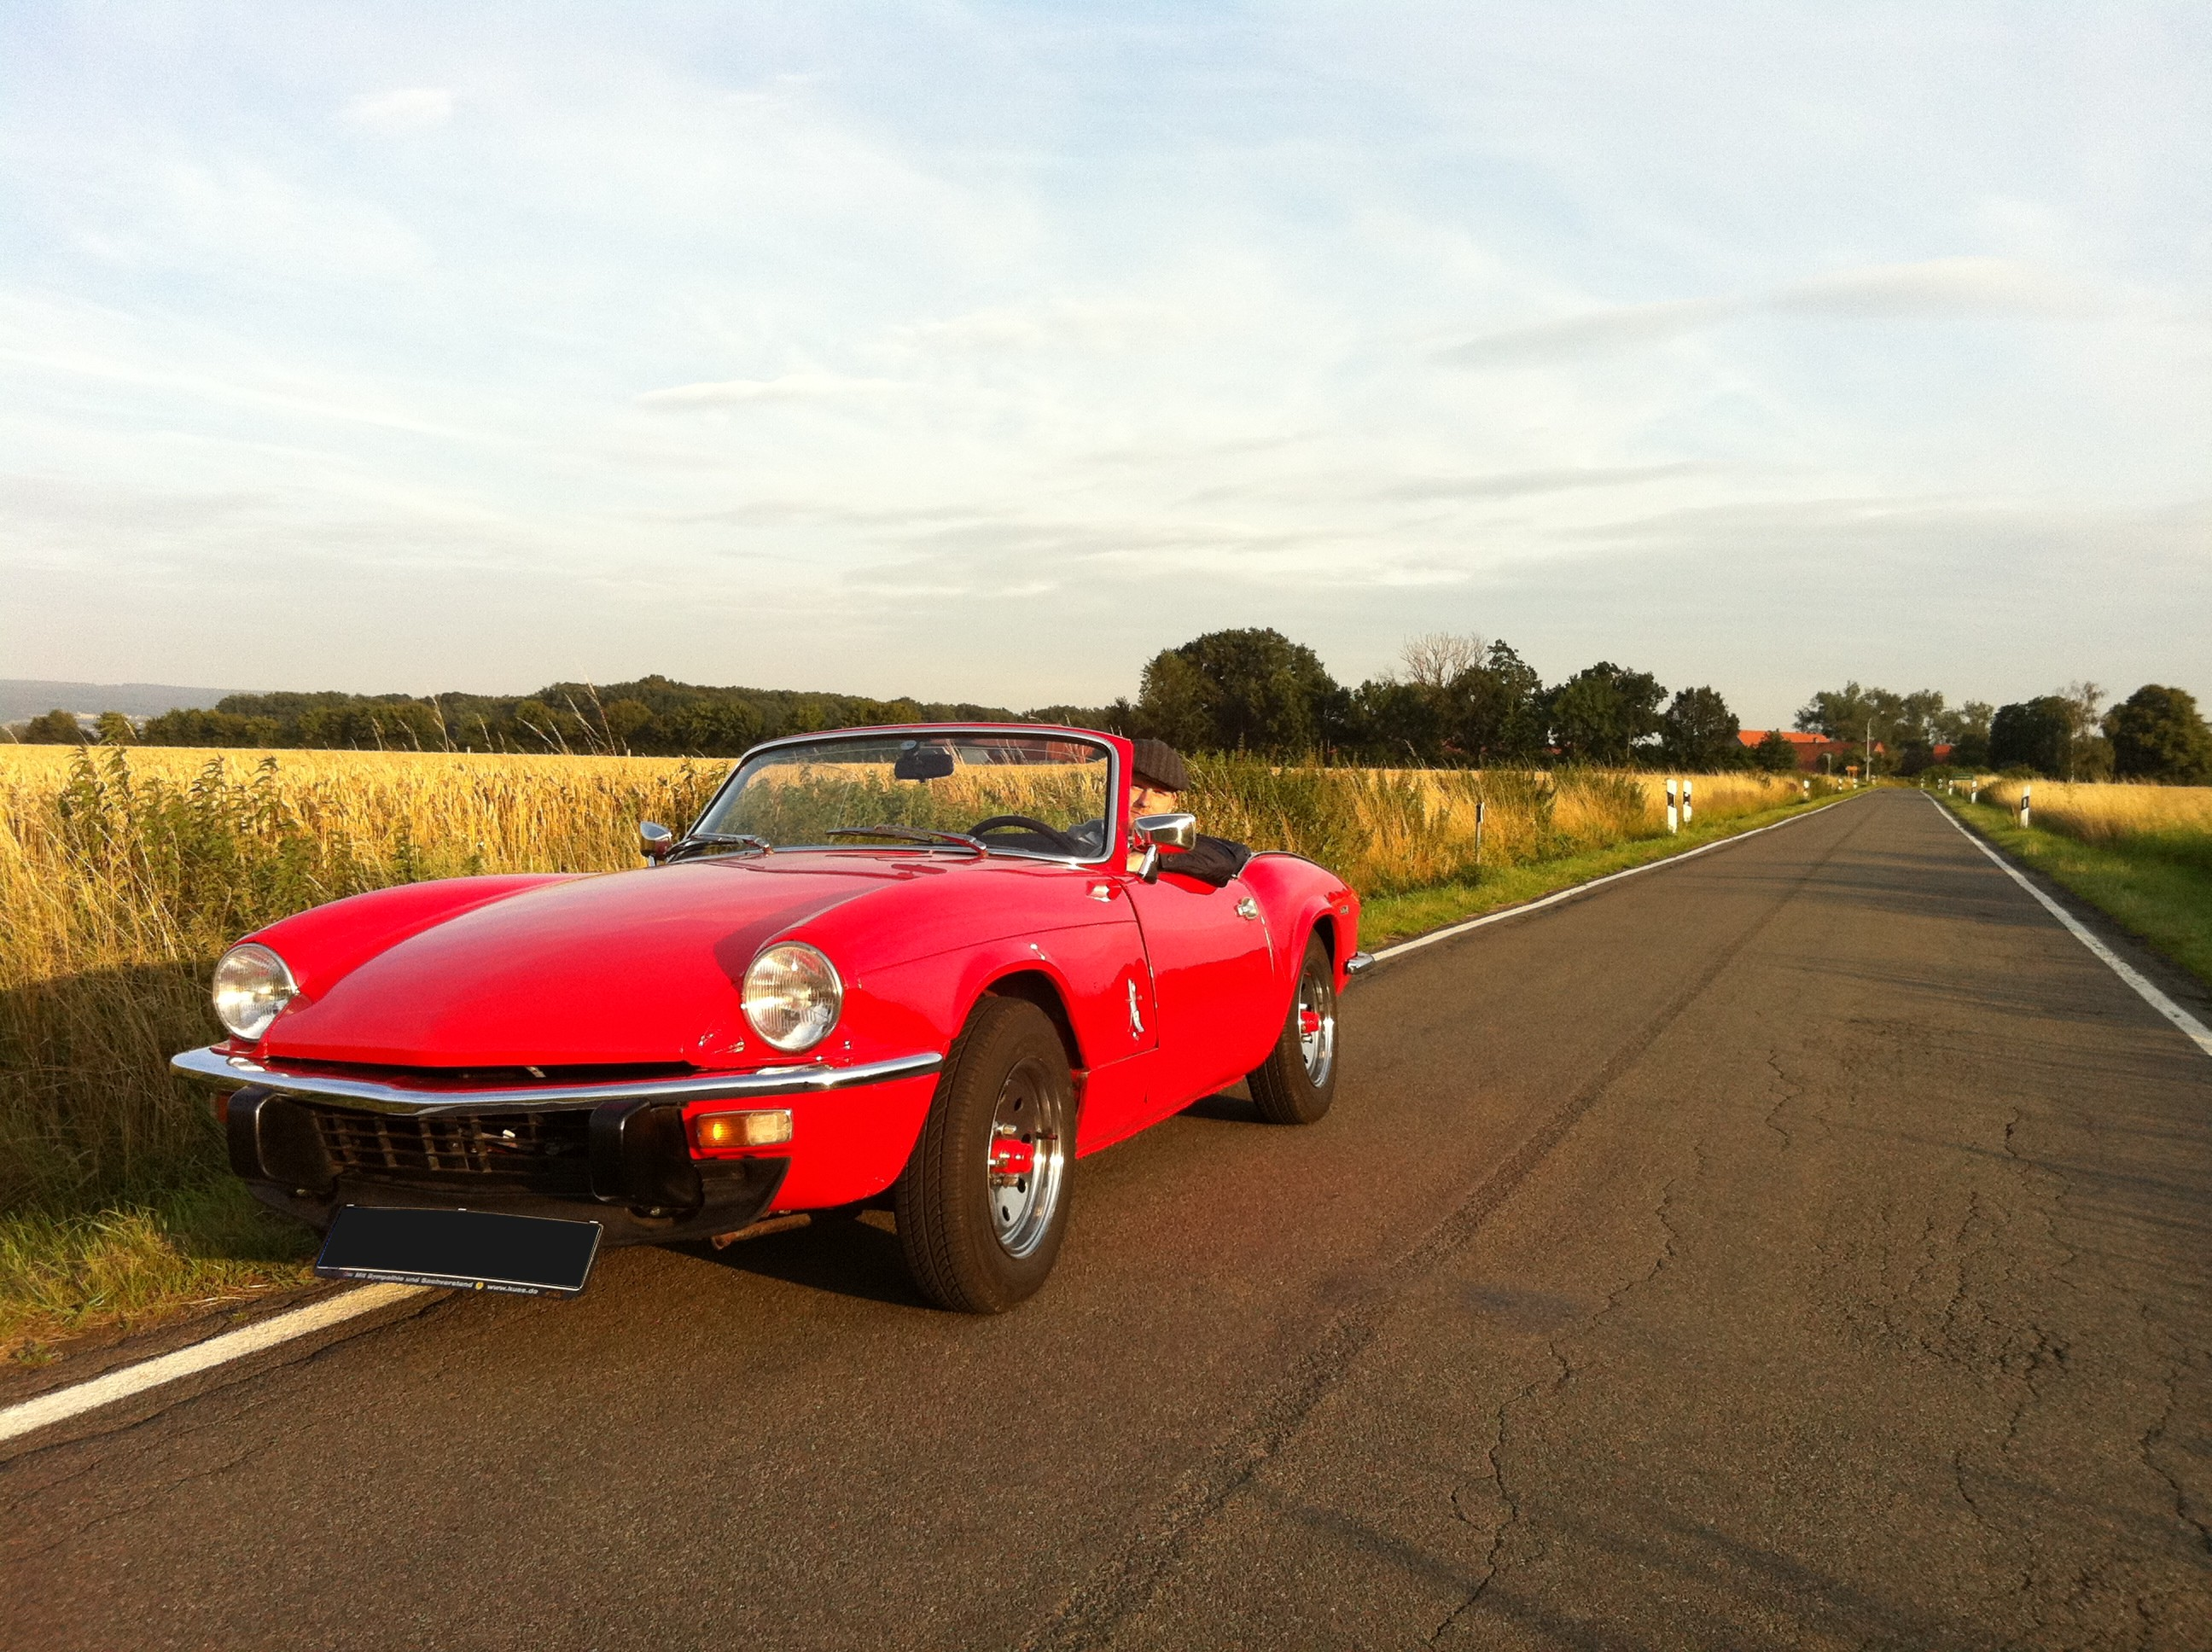 Triumph Spitfire Wallpapers   Car Wallpapers Wallpaper Send 2592x1936